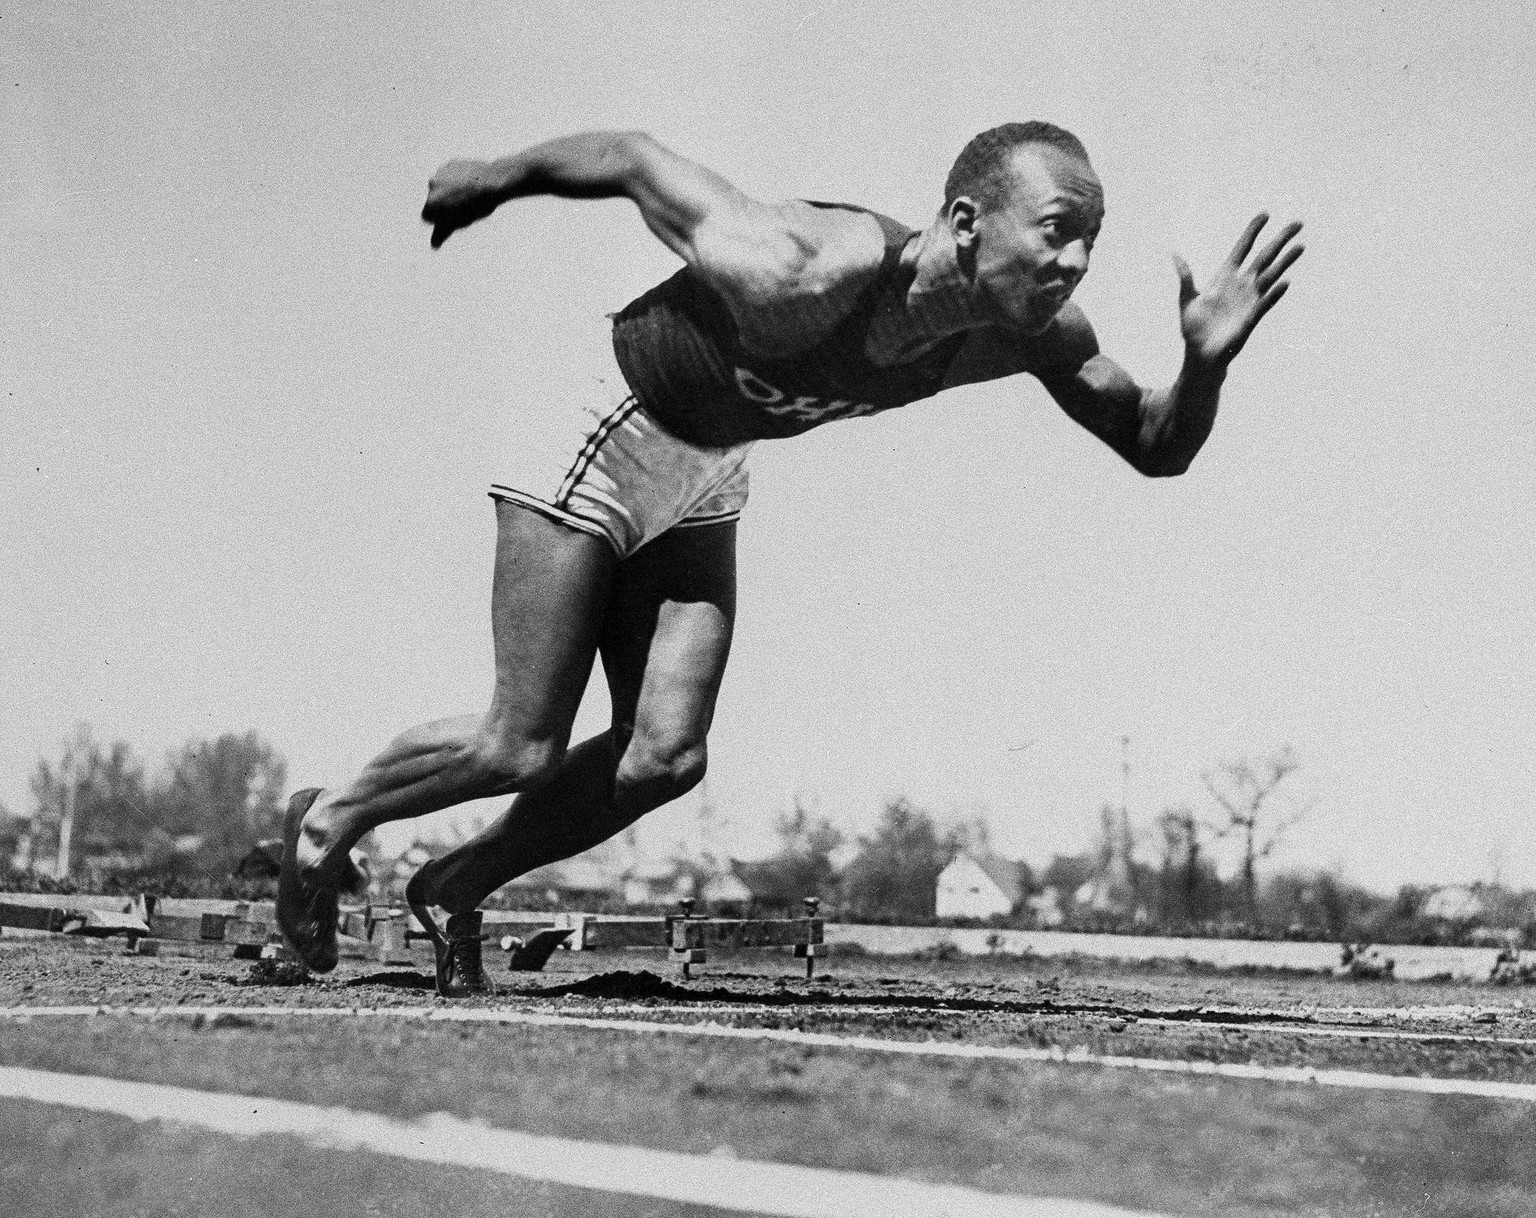 ARCHIV - ZUM KEYSTONE-SDA-TEXT UEBER DEN US-LEICHTATHLETEN JESSE OWENS, DER AM 25. MAI 1935 FUENF WELTREKORDE AUFSTELLTE, STELLEN WIR IHNEN FOLGENDES BILDMATERIAL ZUR VERFUEGUNG - Jesse Owens of Ohio State University dashes the furlong in 20.3 seconds at the Big Ten Western Conference track meet in Ann Arbor, Mich., May 25, 1935. In what is acknowledged as the greatest single day by any track and field athlete, Owens broke five world records and tied another within the span of 45 minutes. (KEYSTONE/AP Photo)